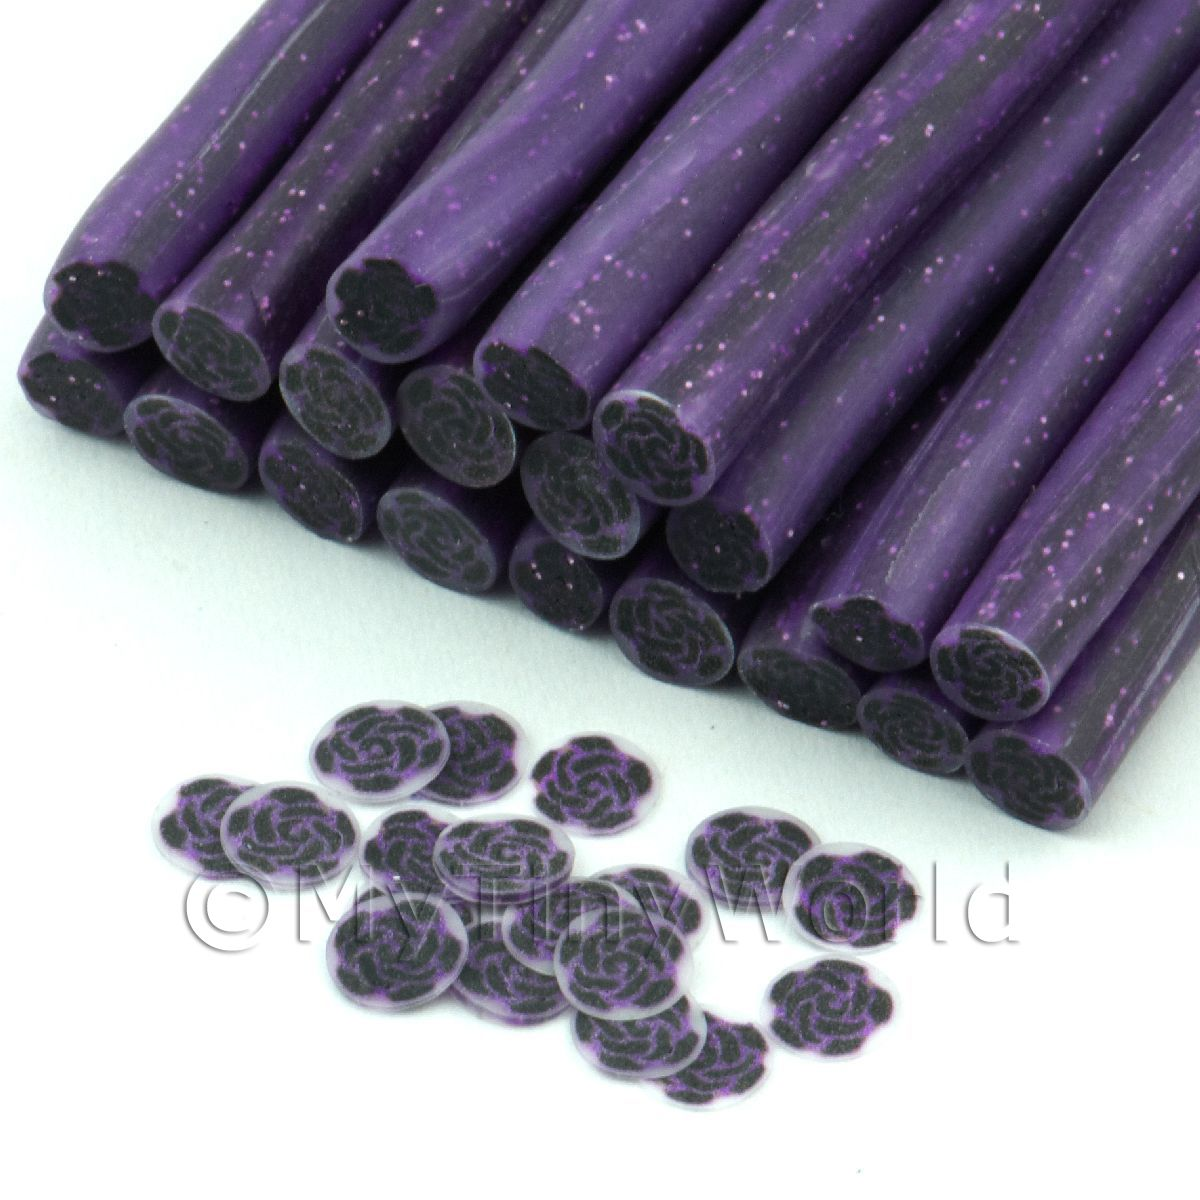 1 Black And Purple Rose Cane With Glitter - Nail Art (11NC60)